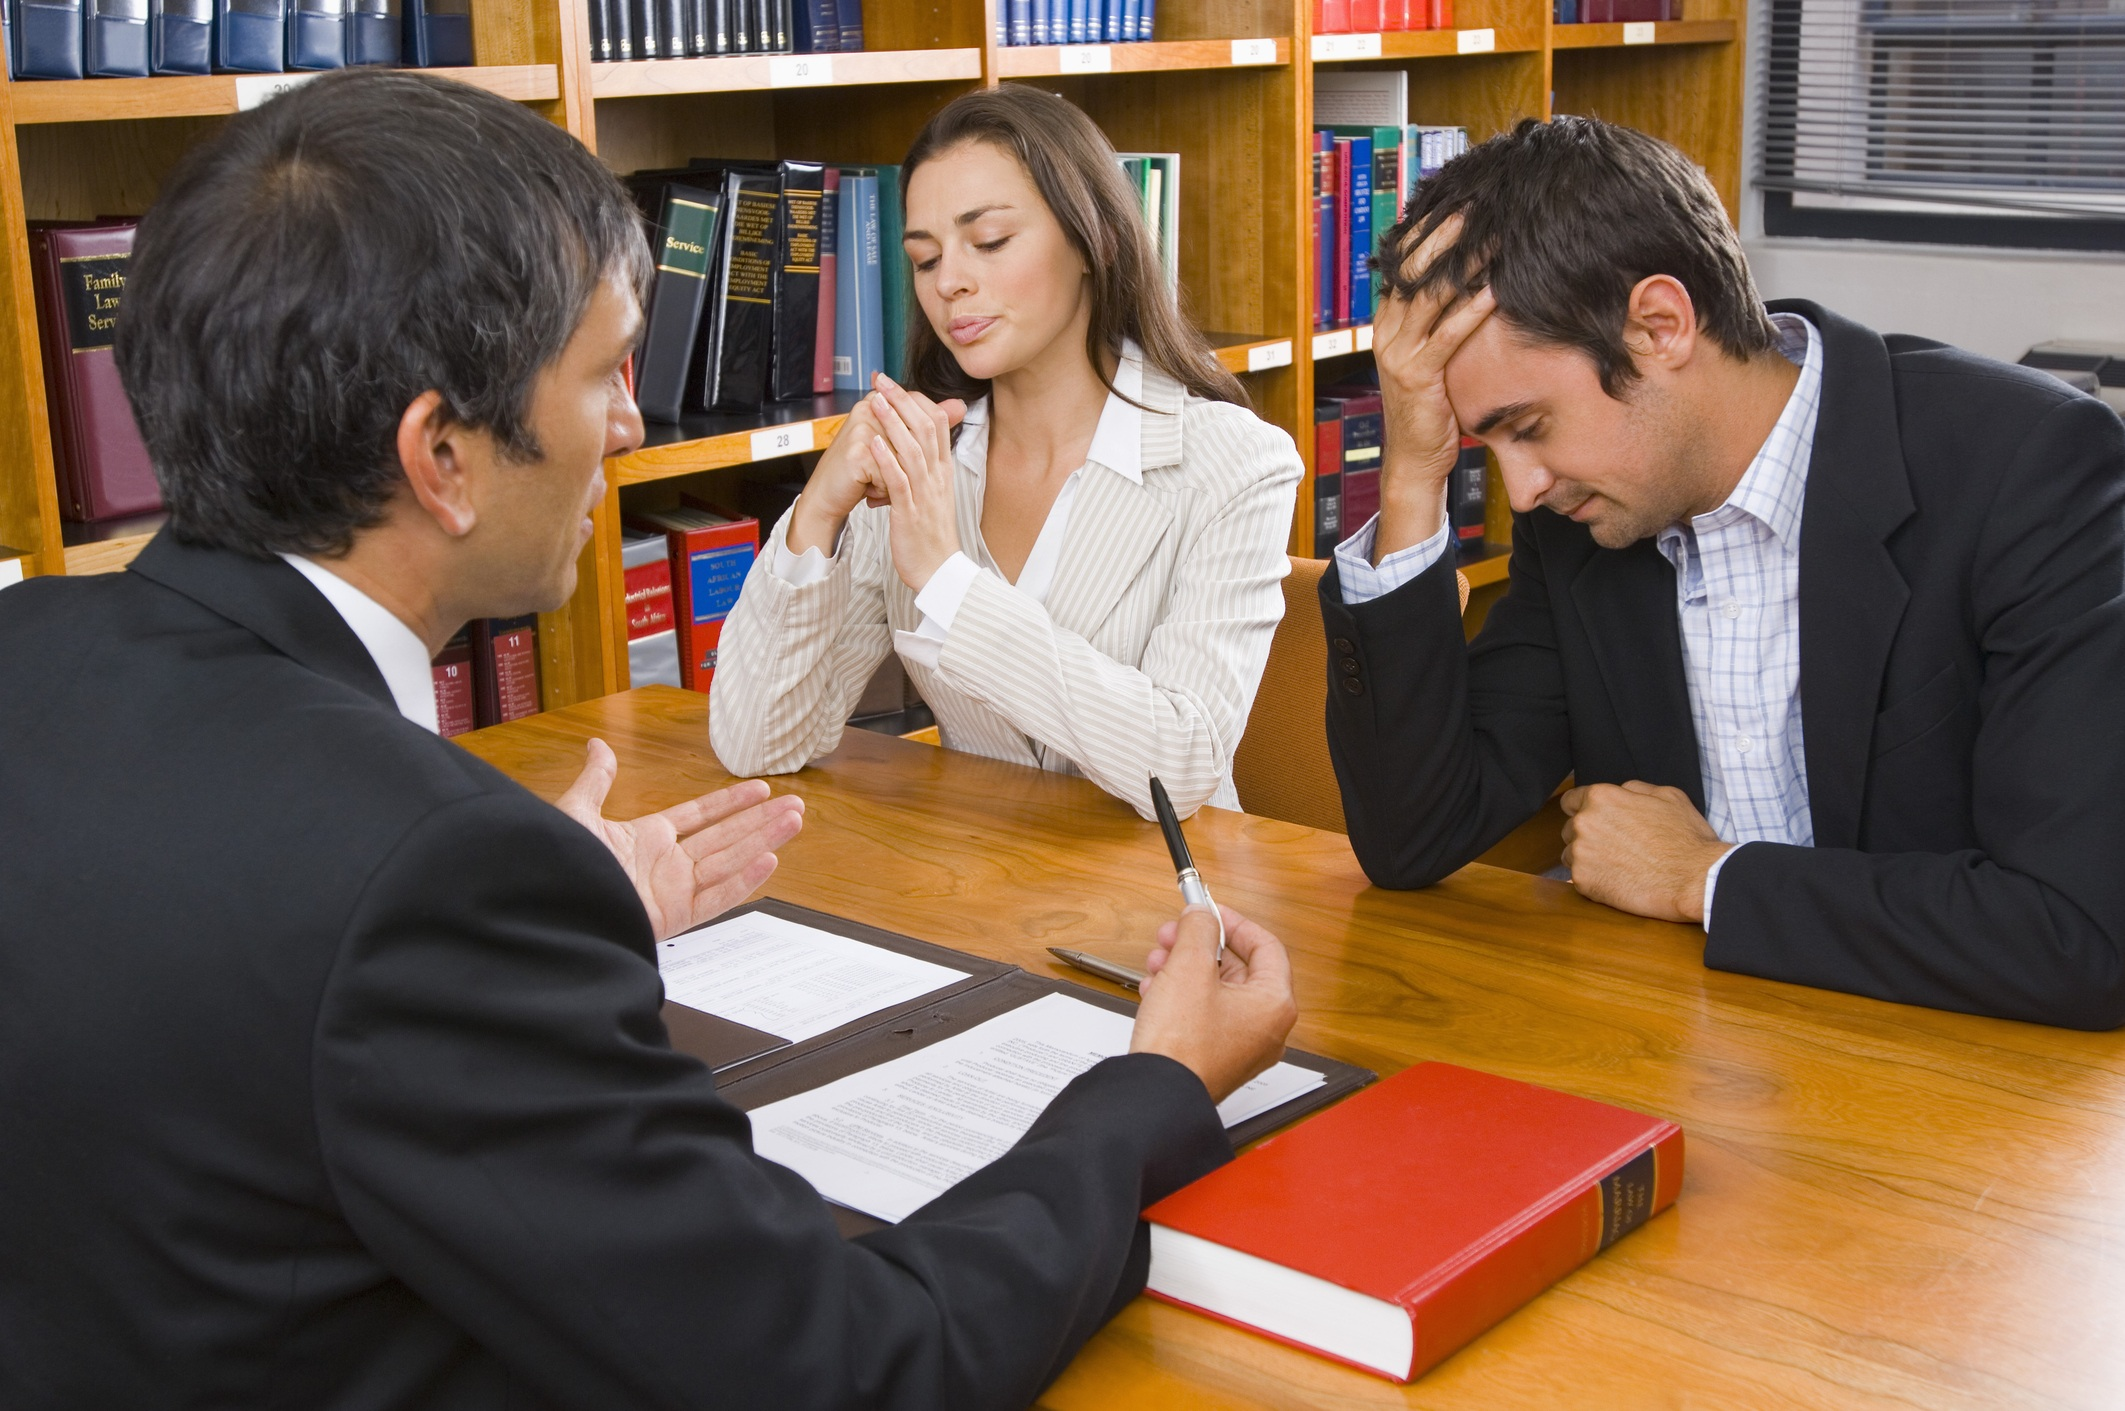 Secrets A Divorce Lawyer Doesn't Want You To Know. Dallas Security Guards Earn Lpn Degree Online. Electrical Engineering Duties. Chiropractor In Fort Lauderdale. Mysql Monitor Performance Pet Sematary Review. How To Be Certified Personal Trainer. Tree Service Morris County Nj. Publish Your Own Photo Book Raymond Chu Dds. Whats The Best Cable Company